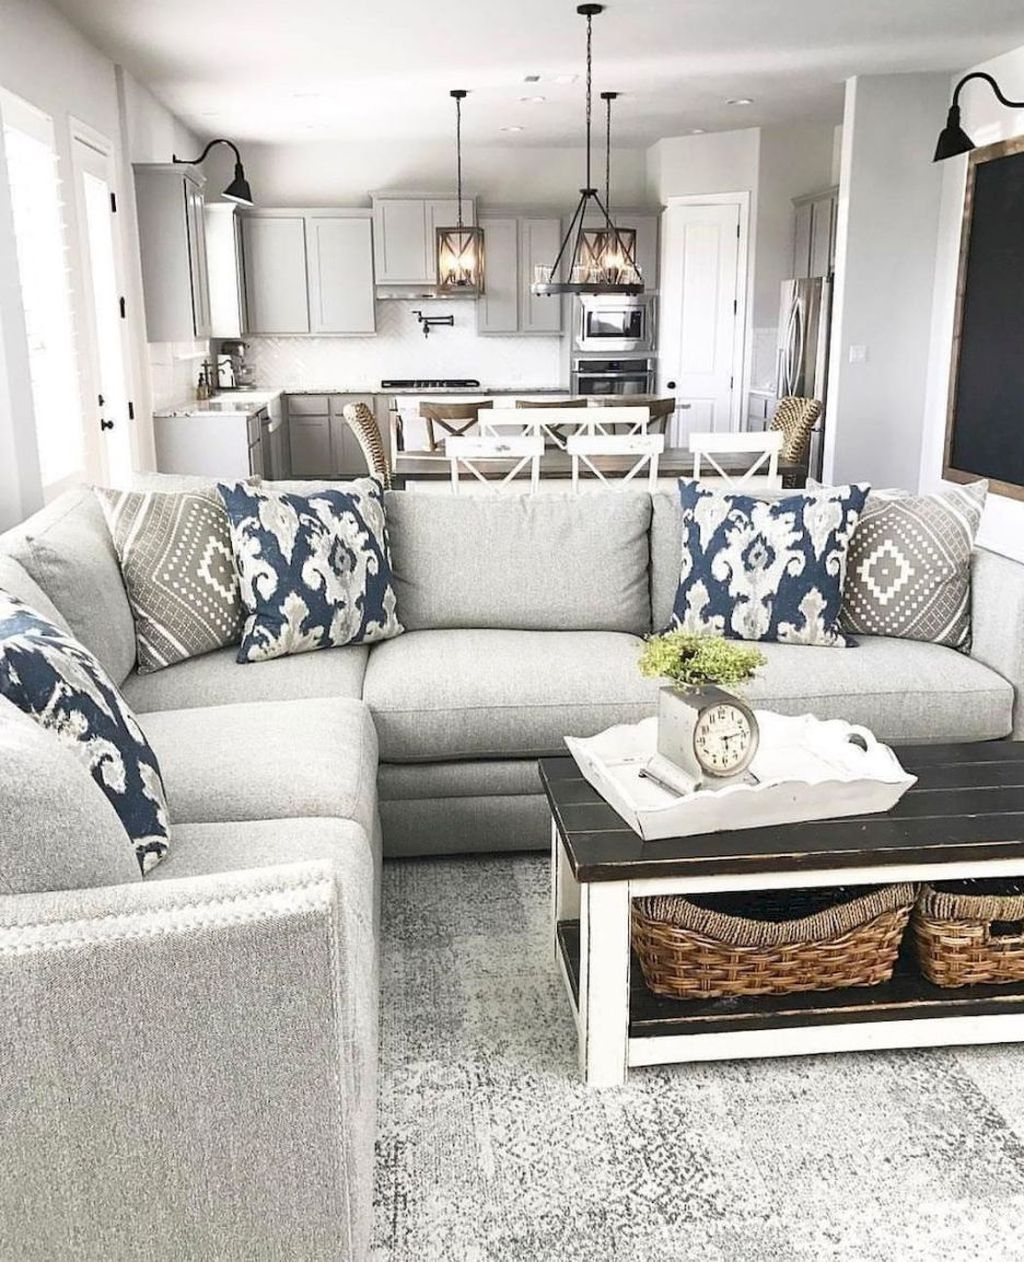 48 inspiring modern farmhouse style decoration ideas for on modern farmhouse living room design and decor inspirations country farmhouse furniture id=90471